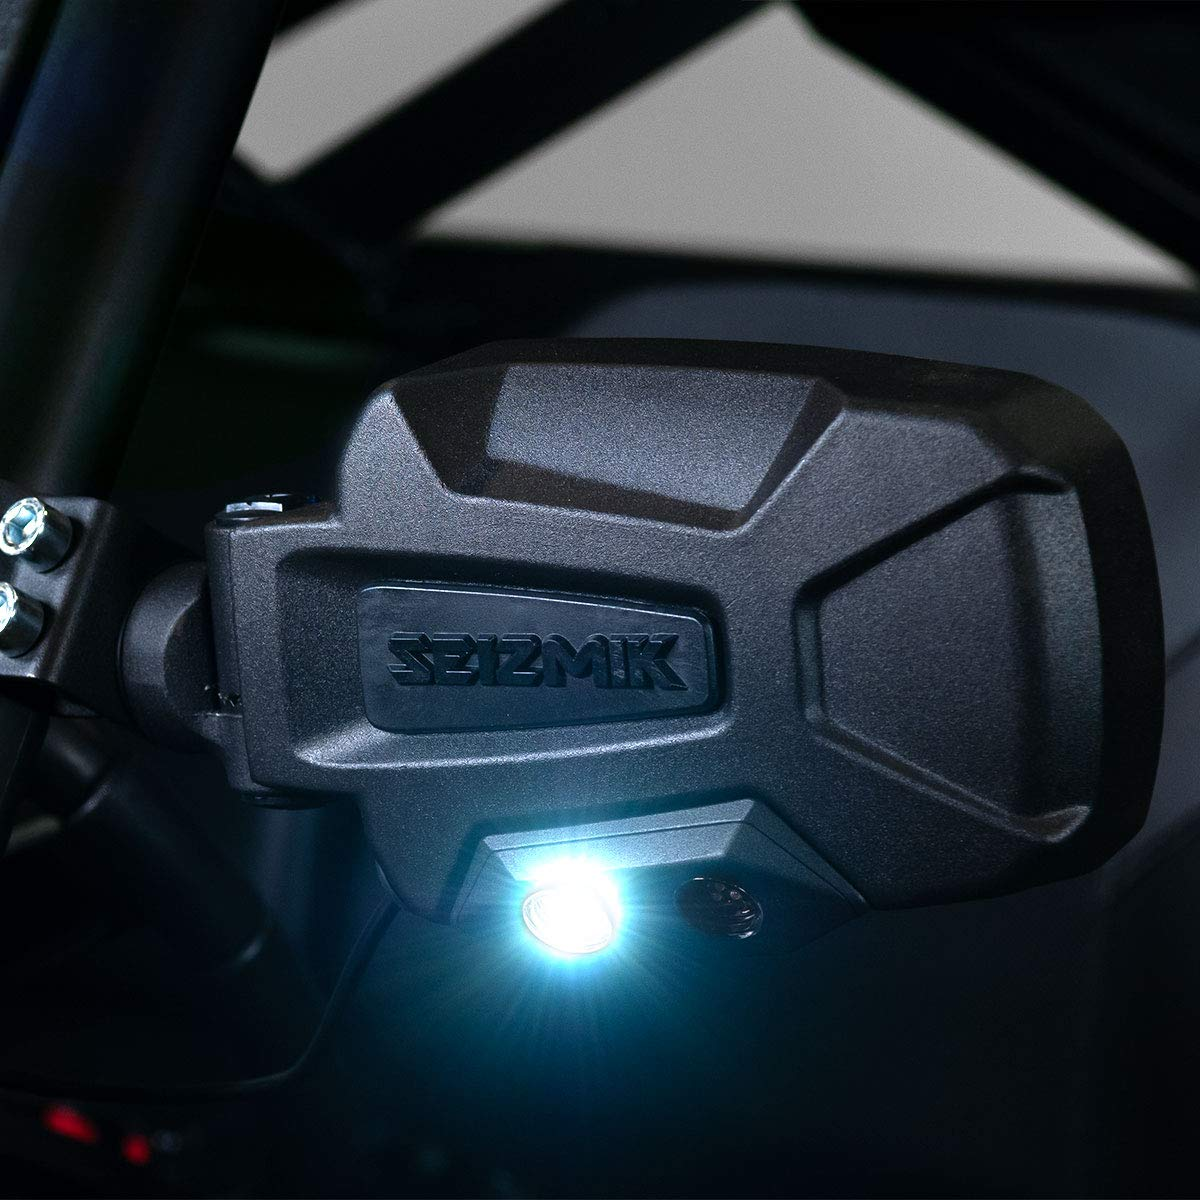 Seizmik Pursuit UTV Sideview Mirror Kit with 2 Color Night Vision Led Lighting System 18087